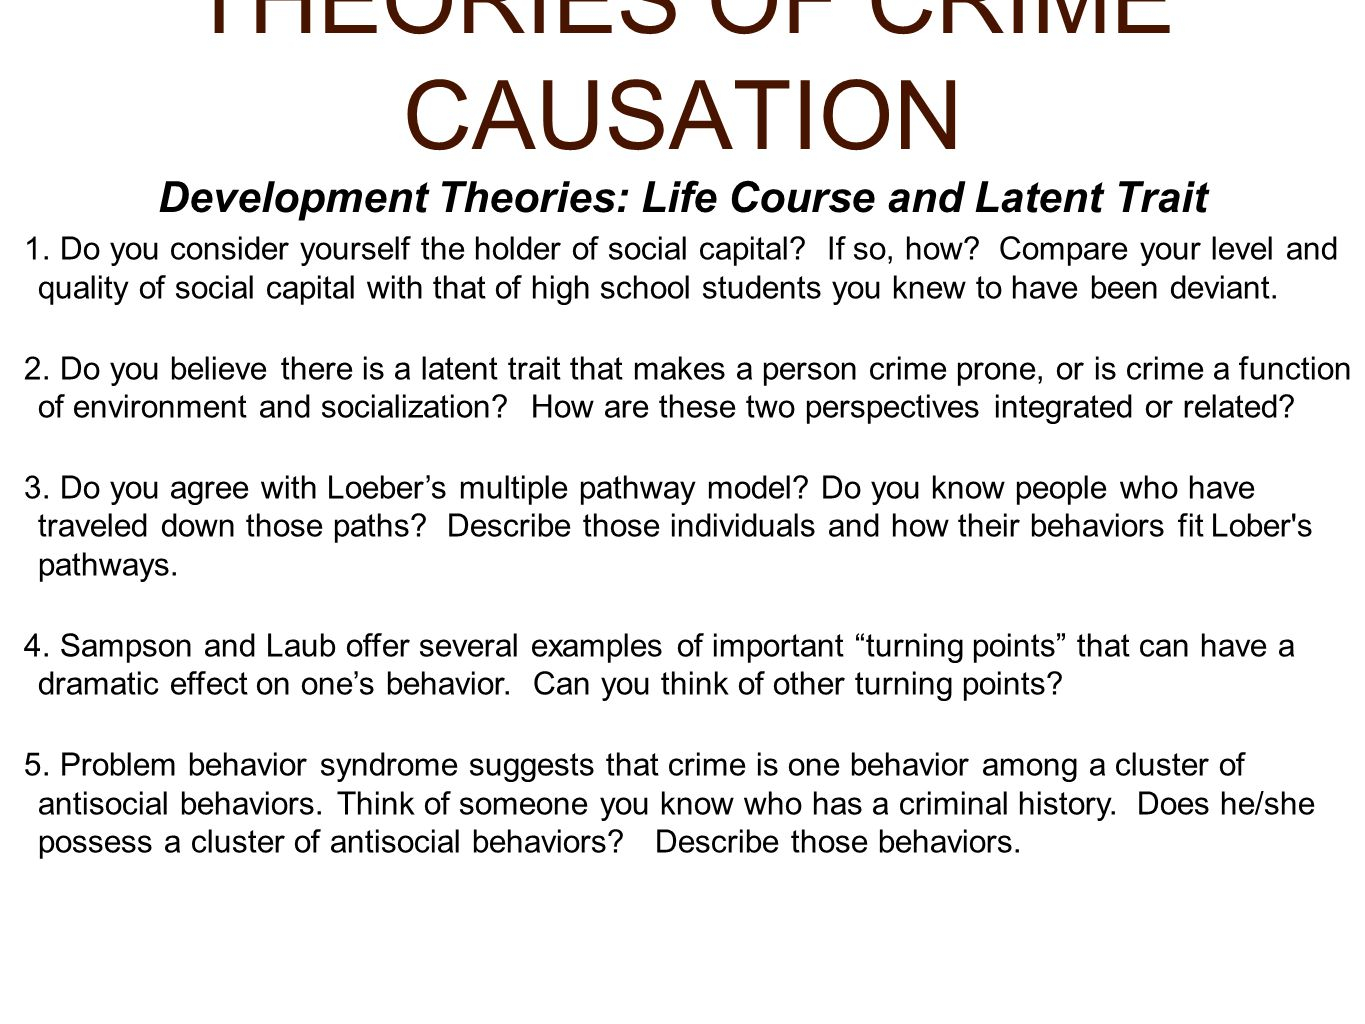 crime causation Essays - largest database of quality sample essays and research papers on crime causation and diversion paper.